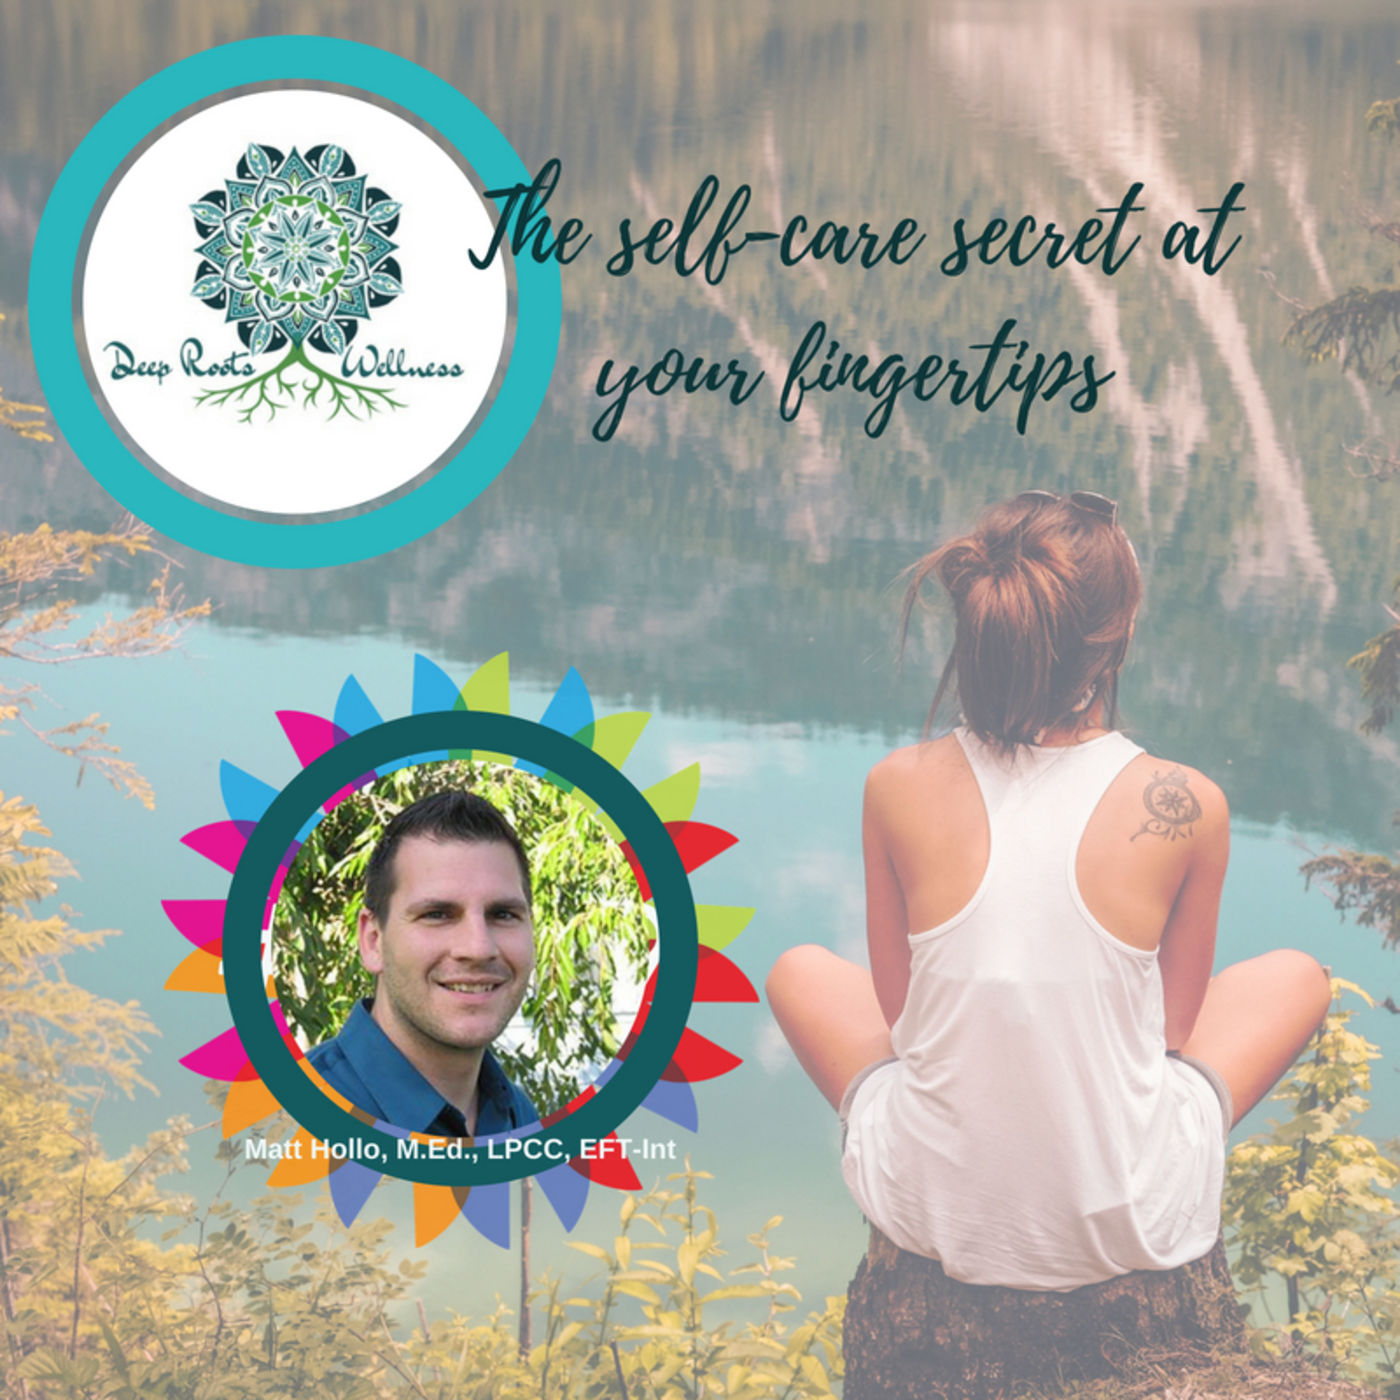 The Self-Care Secret at Your Fingertips (Self care is not selfish)! w/ Matt Hollo, Ep. 47